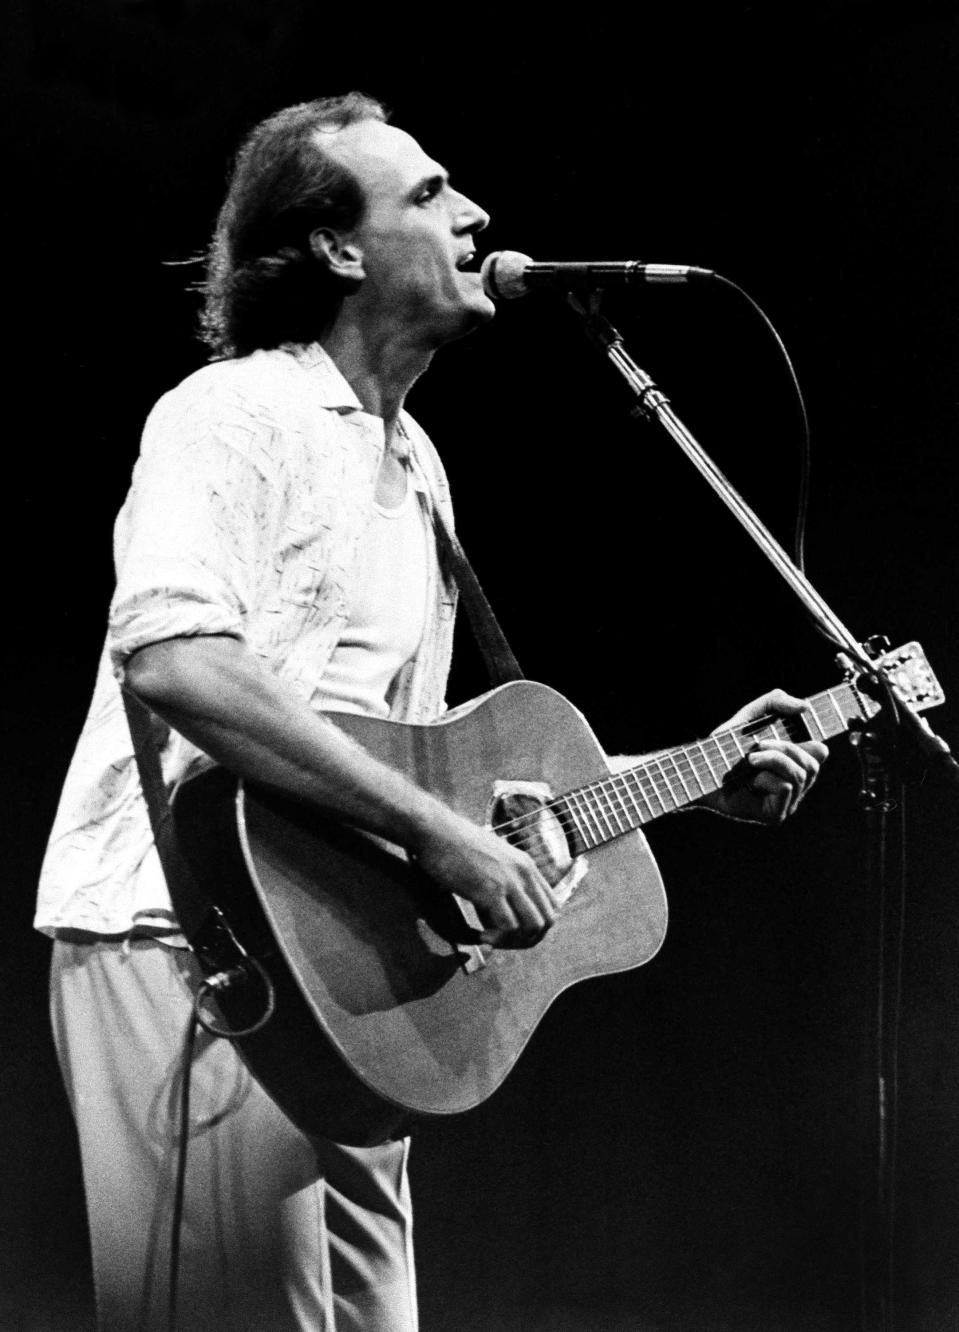 American folk rock singer James Taylor performs at night on Saturday, Jan. 13, 1985 at Rio de Janeiro's Rock in Rio festival. Billod as the biggest rock music festival ever, the ten-day event features 29 European, American, Australian and Brazilia groups. (AP Photo)